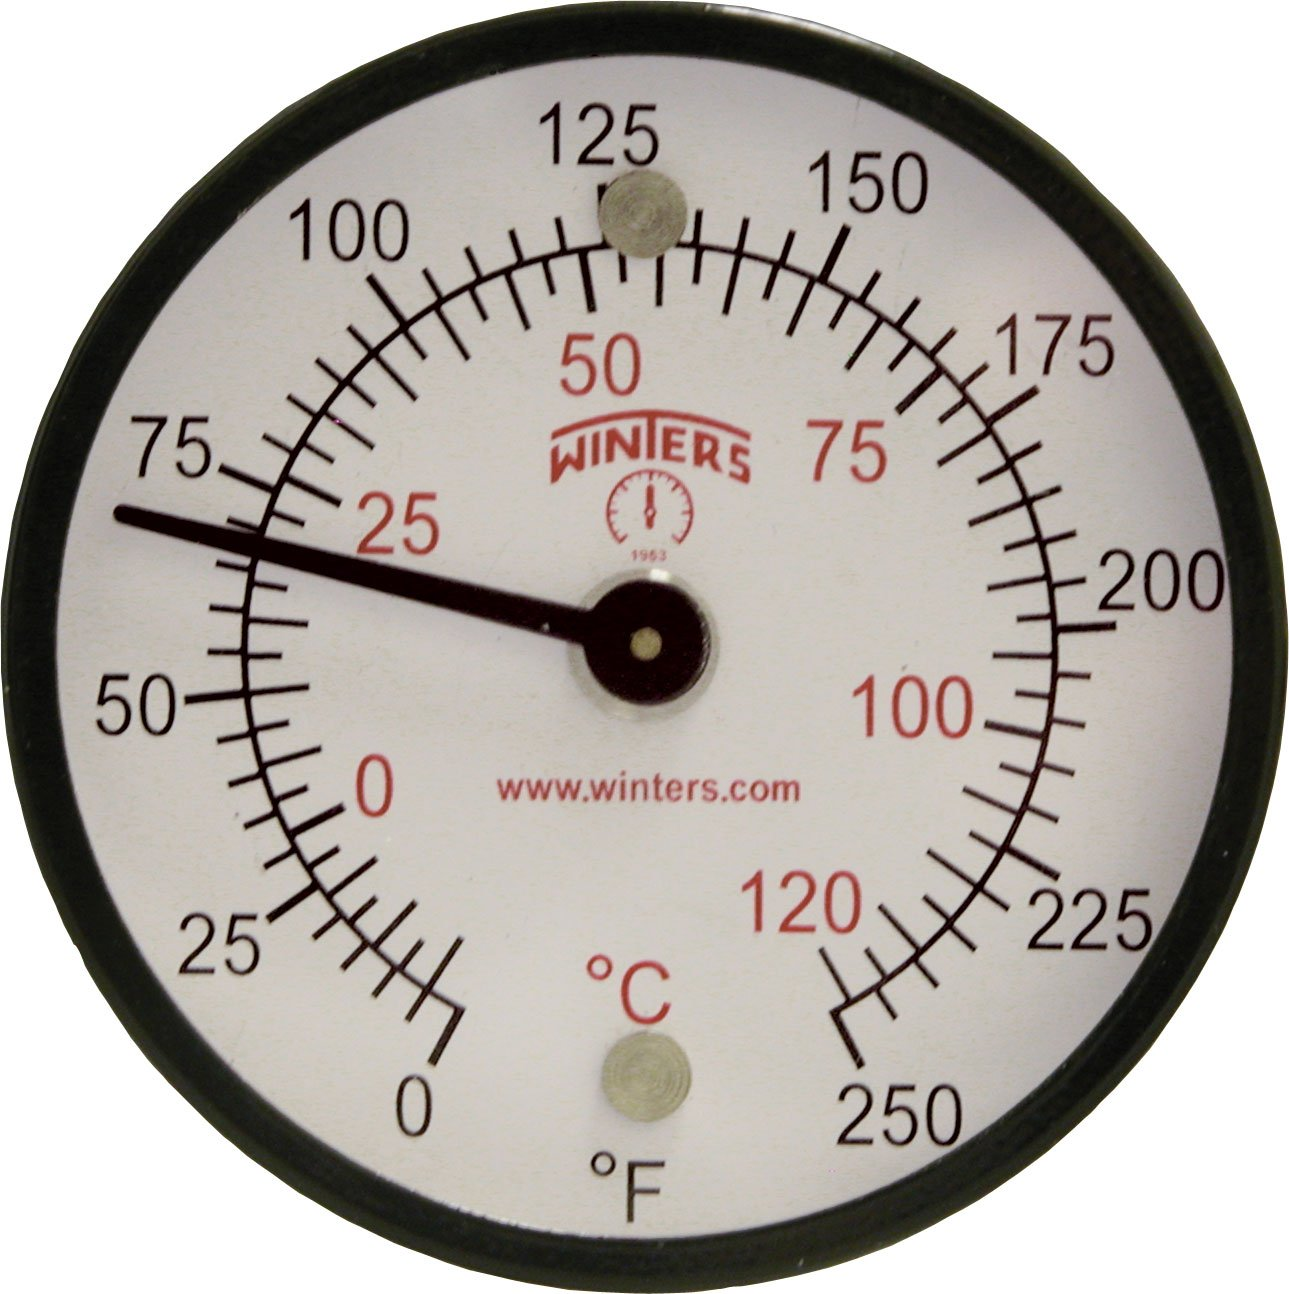 Winters TMT Series Steel Dual scale Surface Magnet Thermometer, 2'' Dial Display, +/-2% Accuracy, 0-250 F/C Range